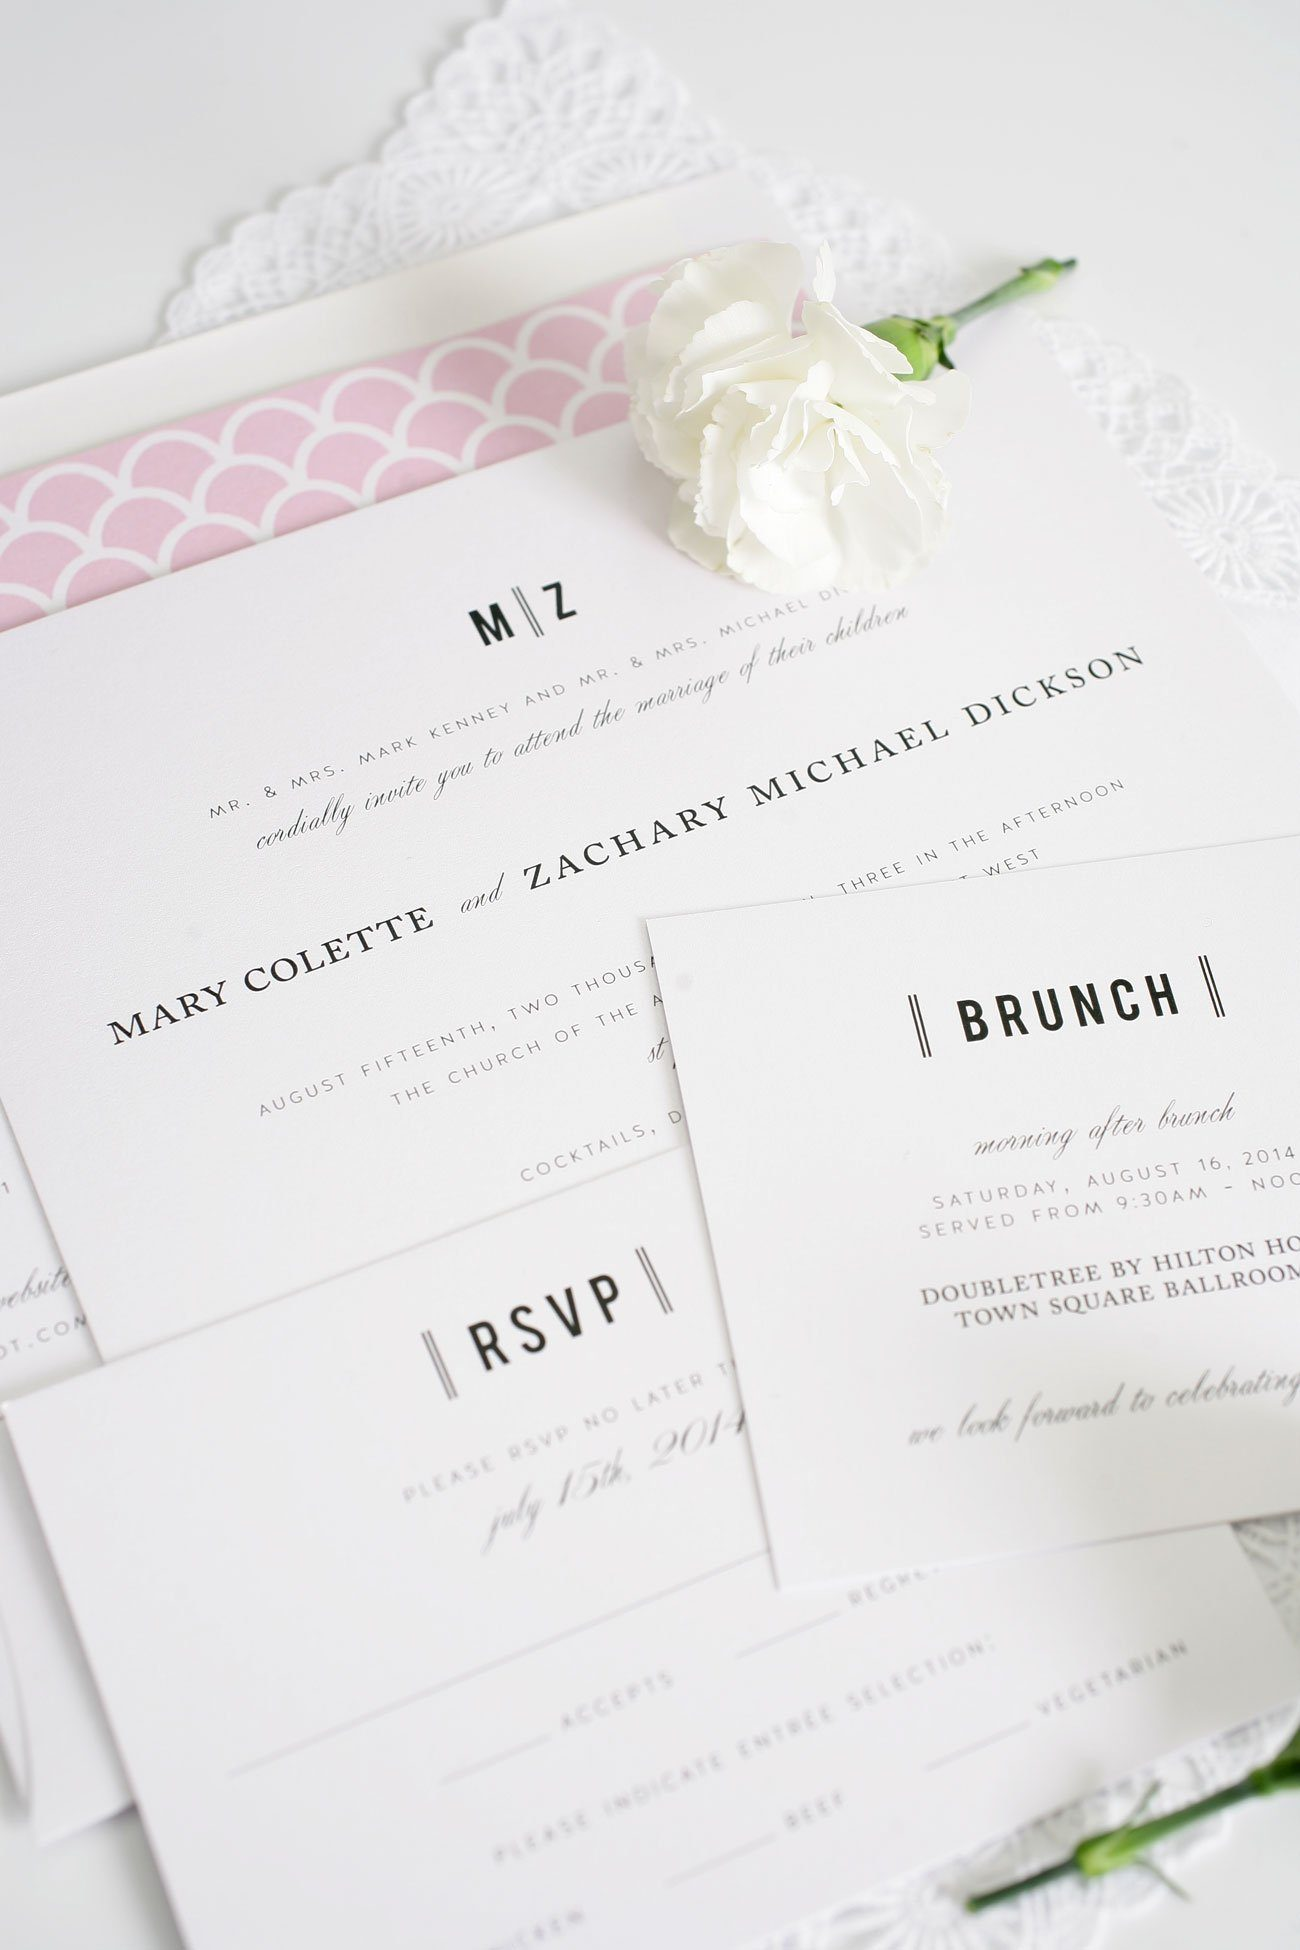 Urban vintage wedding invitations in pink